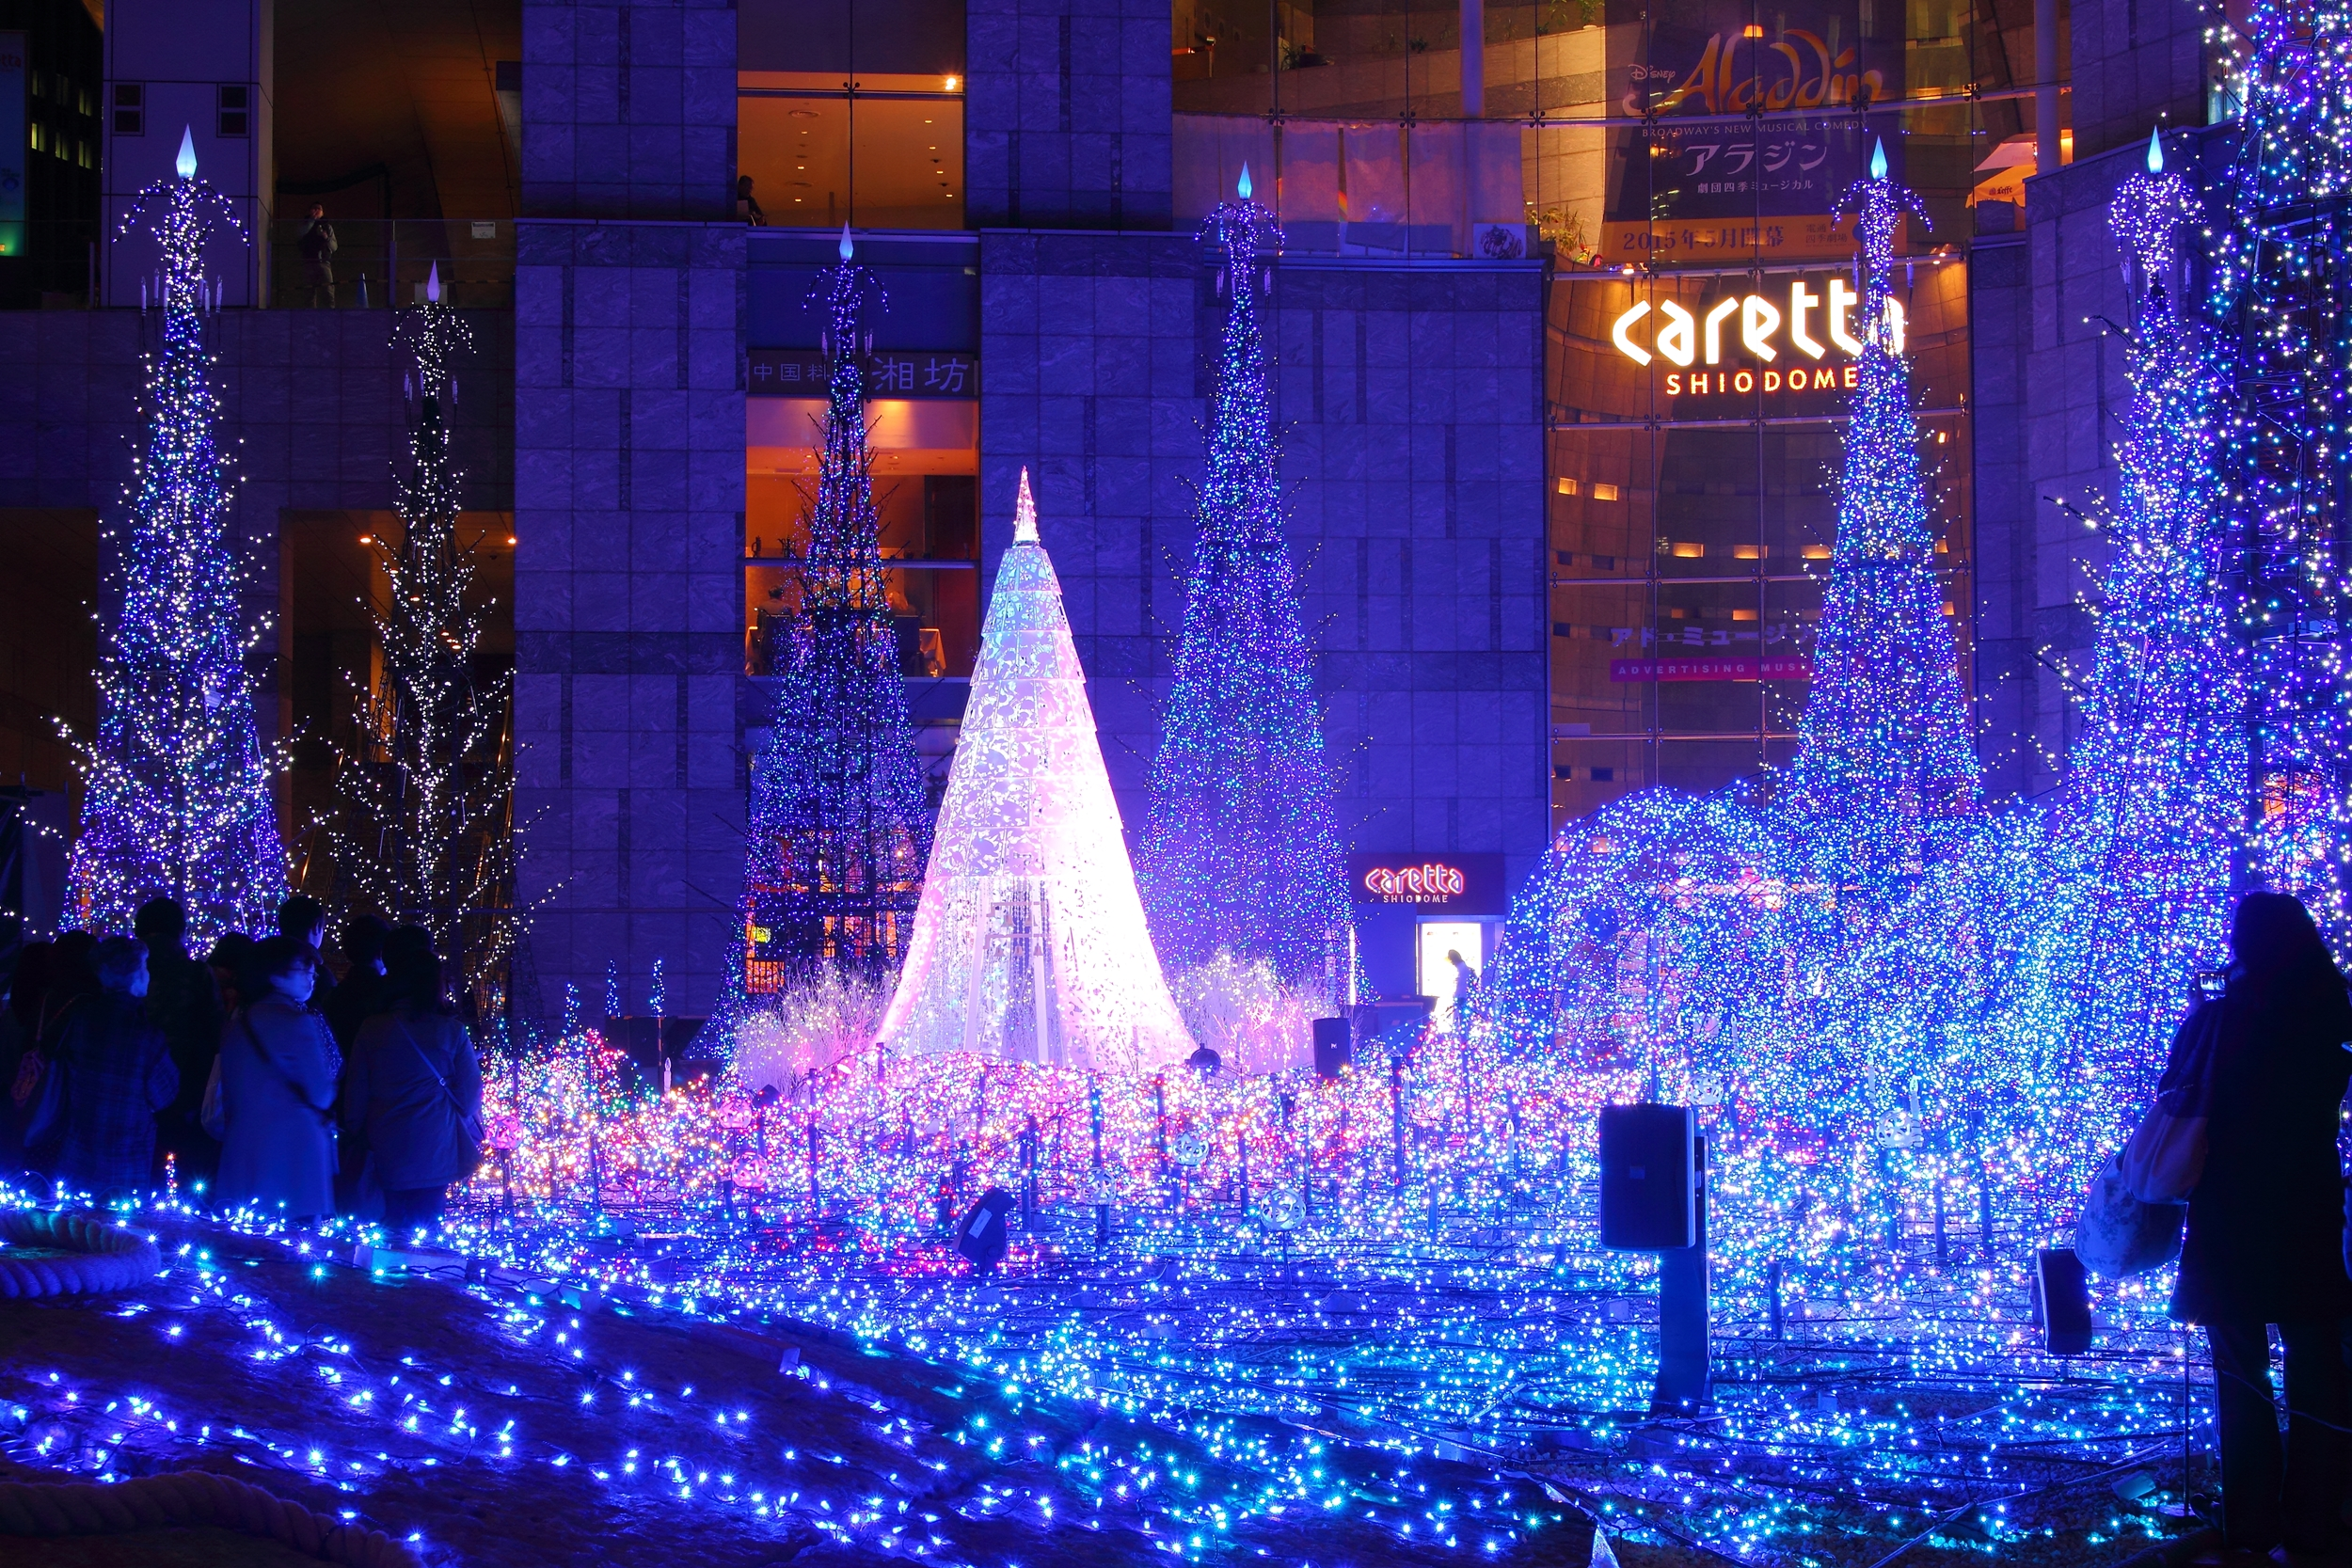 FileCaretta Shiodome At Night 2JPG Wikimedia Commons